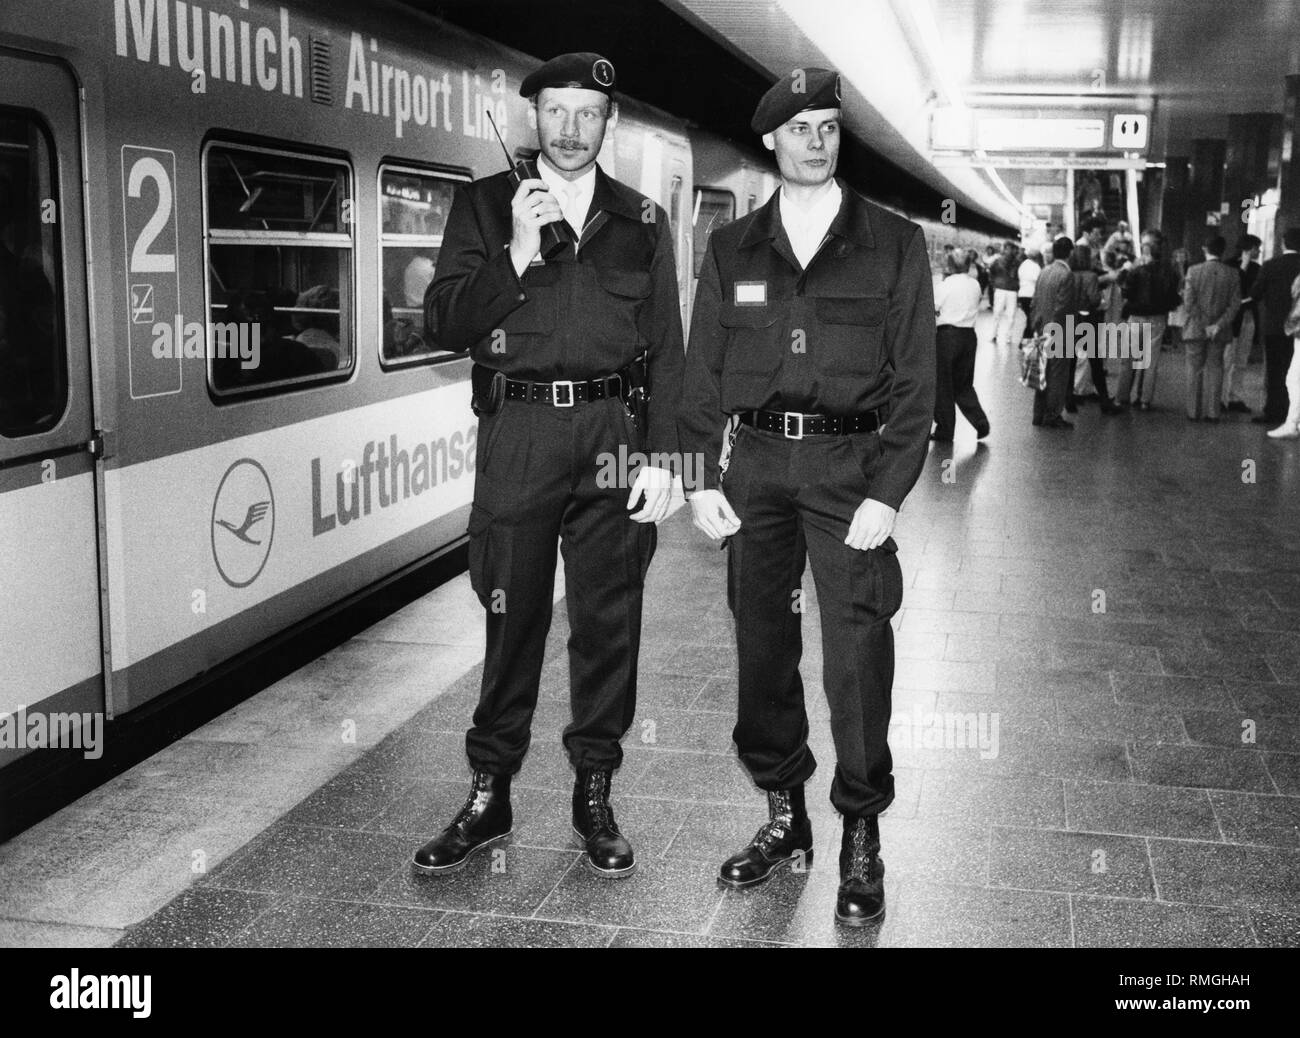 Watchmen Black and White Stock Photos & Images - Alamy